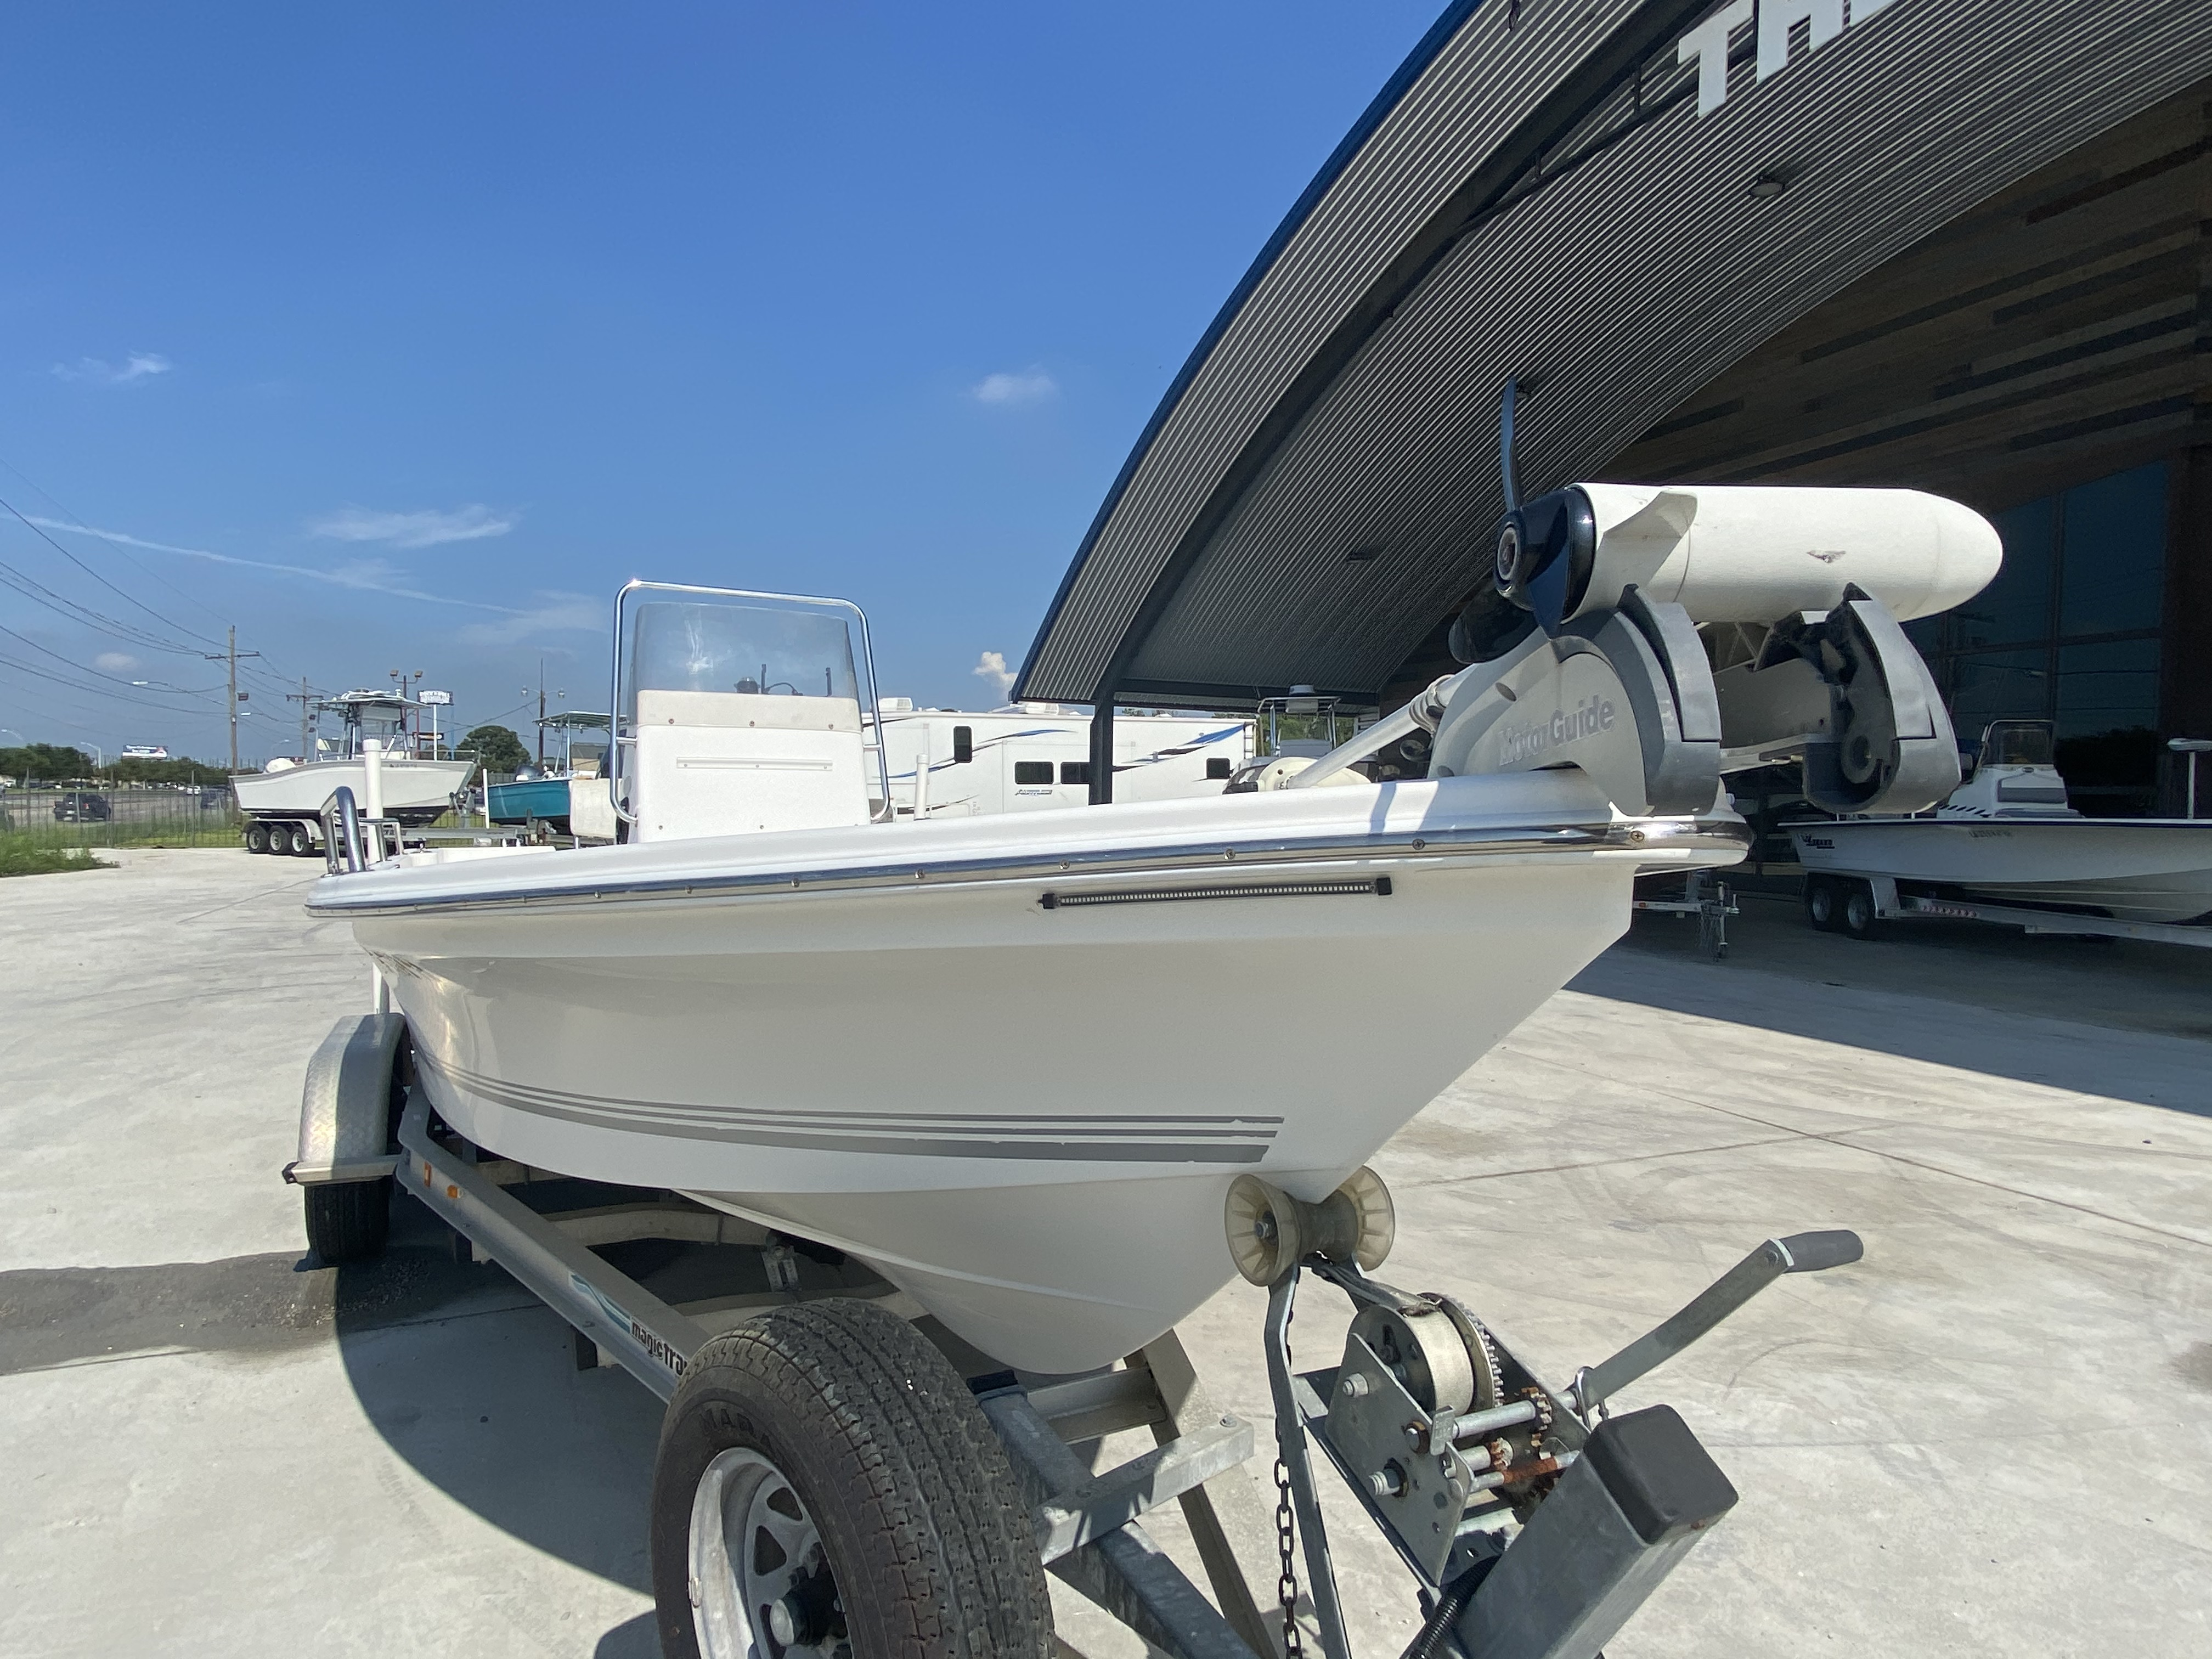 2003 Sea Pro boat for sale, model of the boat is SV2100 & Image # 5 of 12